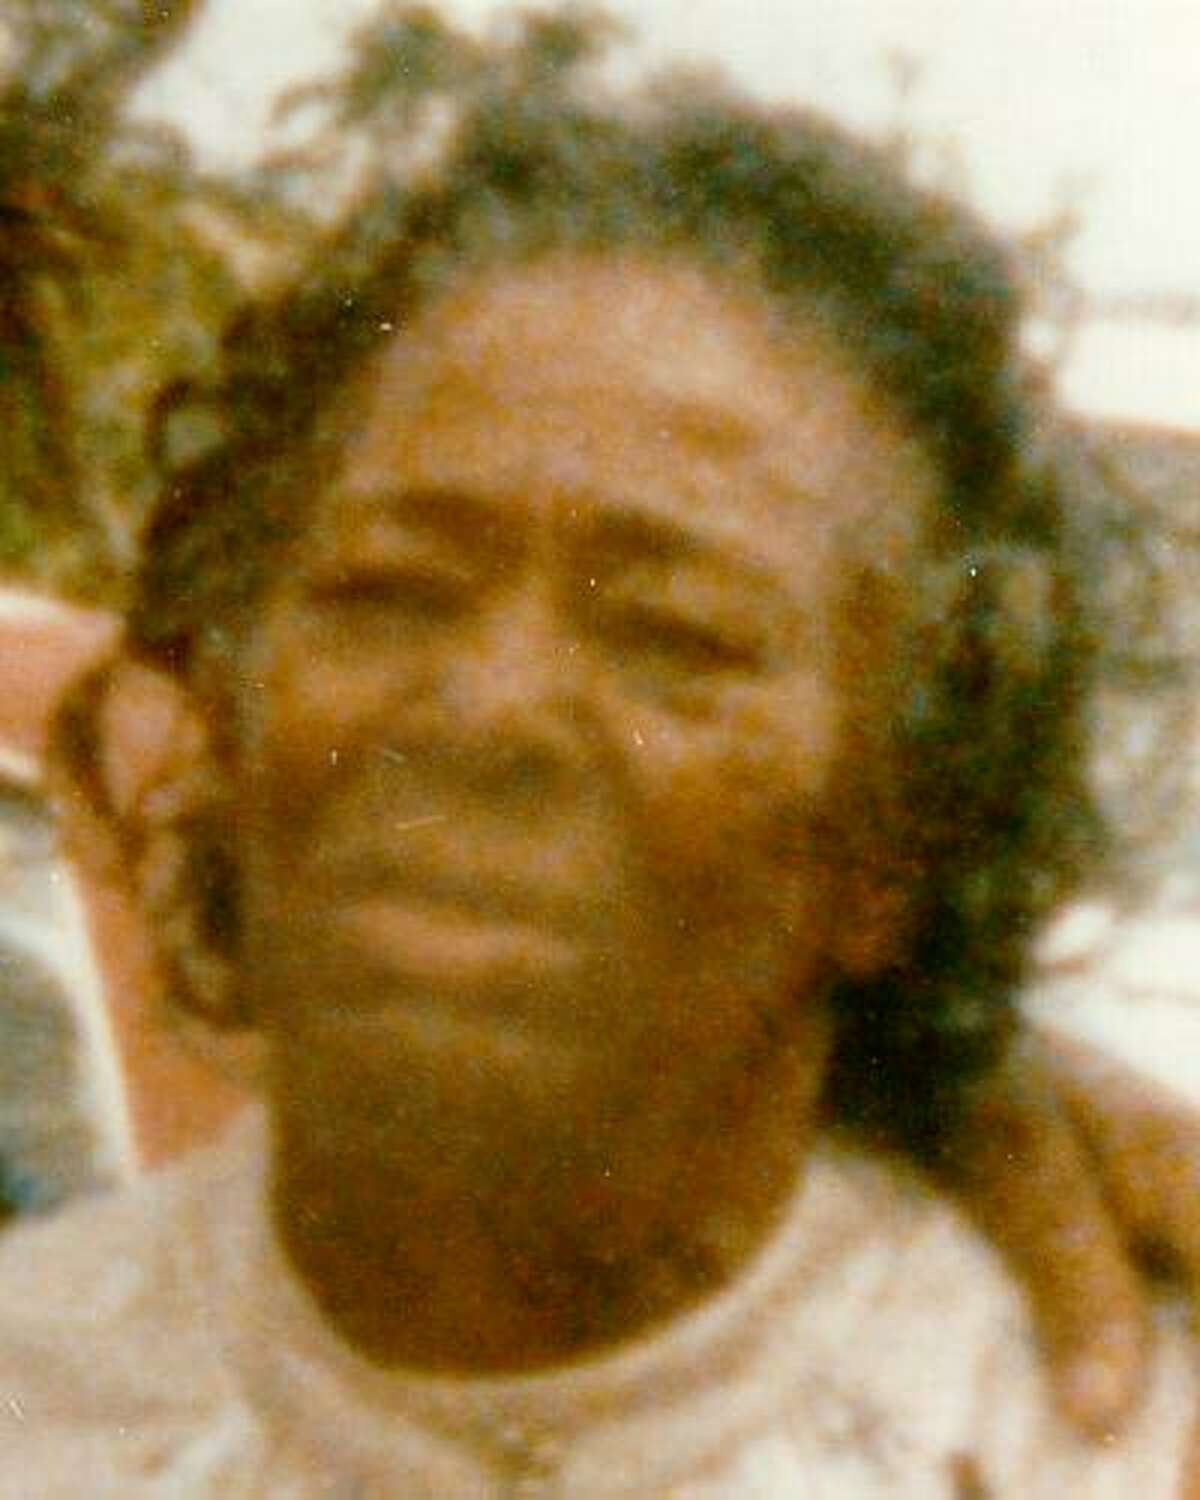 Beatrice Wells, 85, was last seen Jan. 27, 1993, on Lilley Street near the Corrections Corporation of America prison in Cleveland. A flyer given out at the time of her disappearance said she had Alzheimer's Disease.